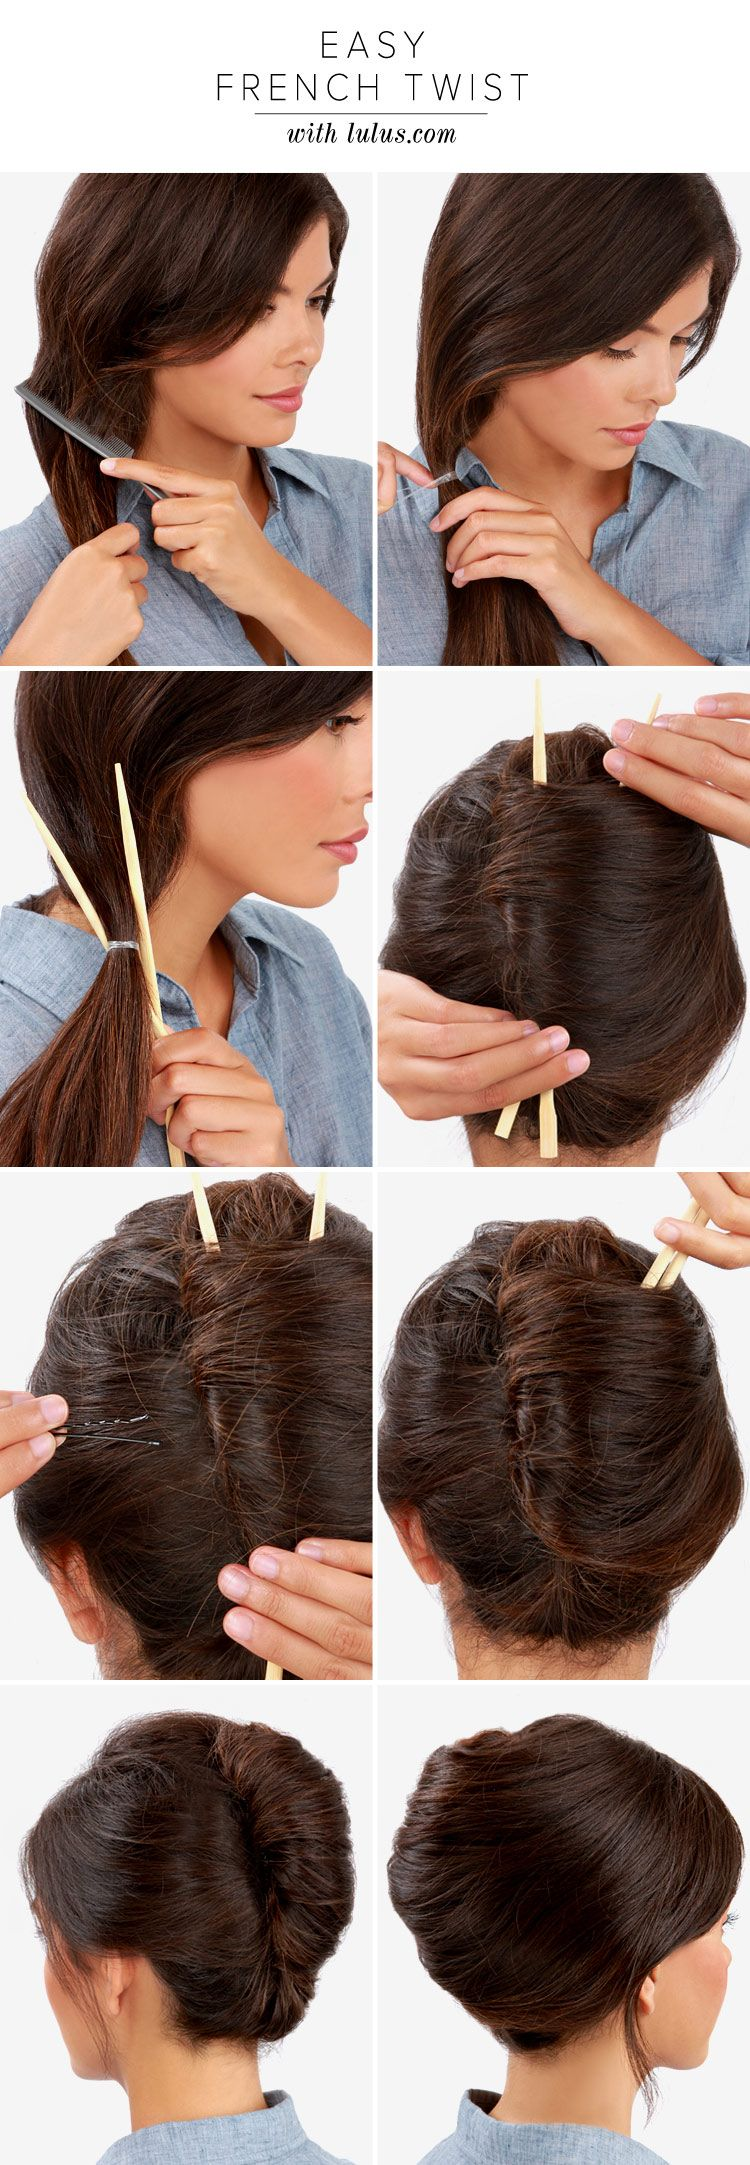 Lulus How To Easy French Twist Lulus Com Fashion Blog Hair Styles Long Hair Styles French Twist Hair